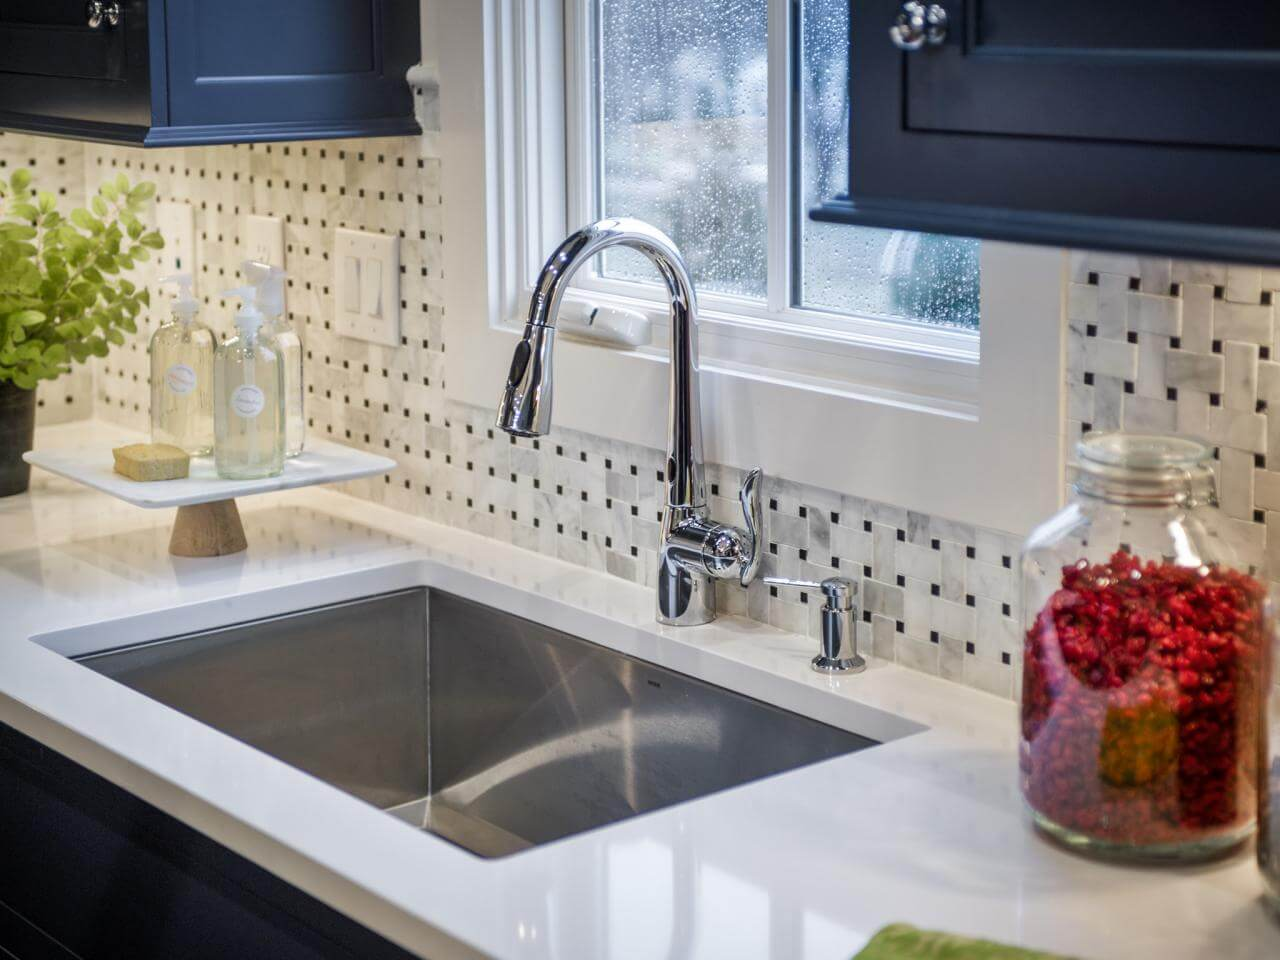 Quartz can be placed around a kitchen sink.